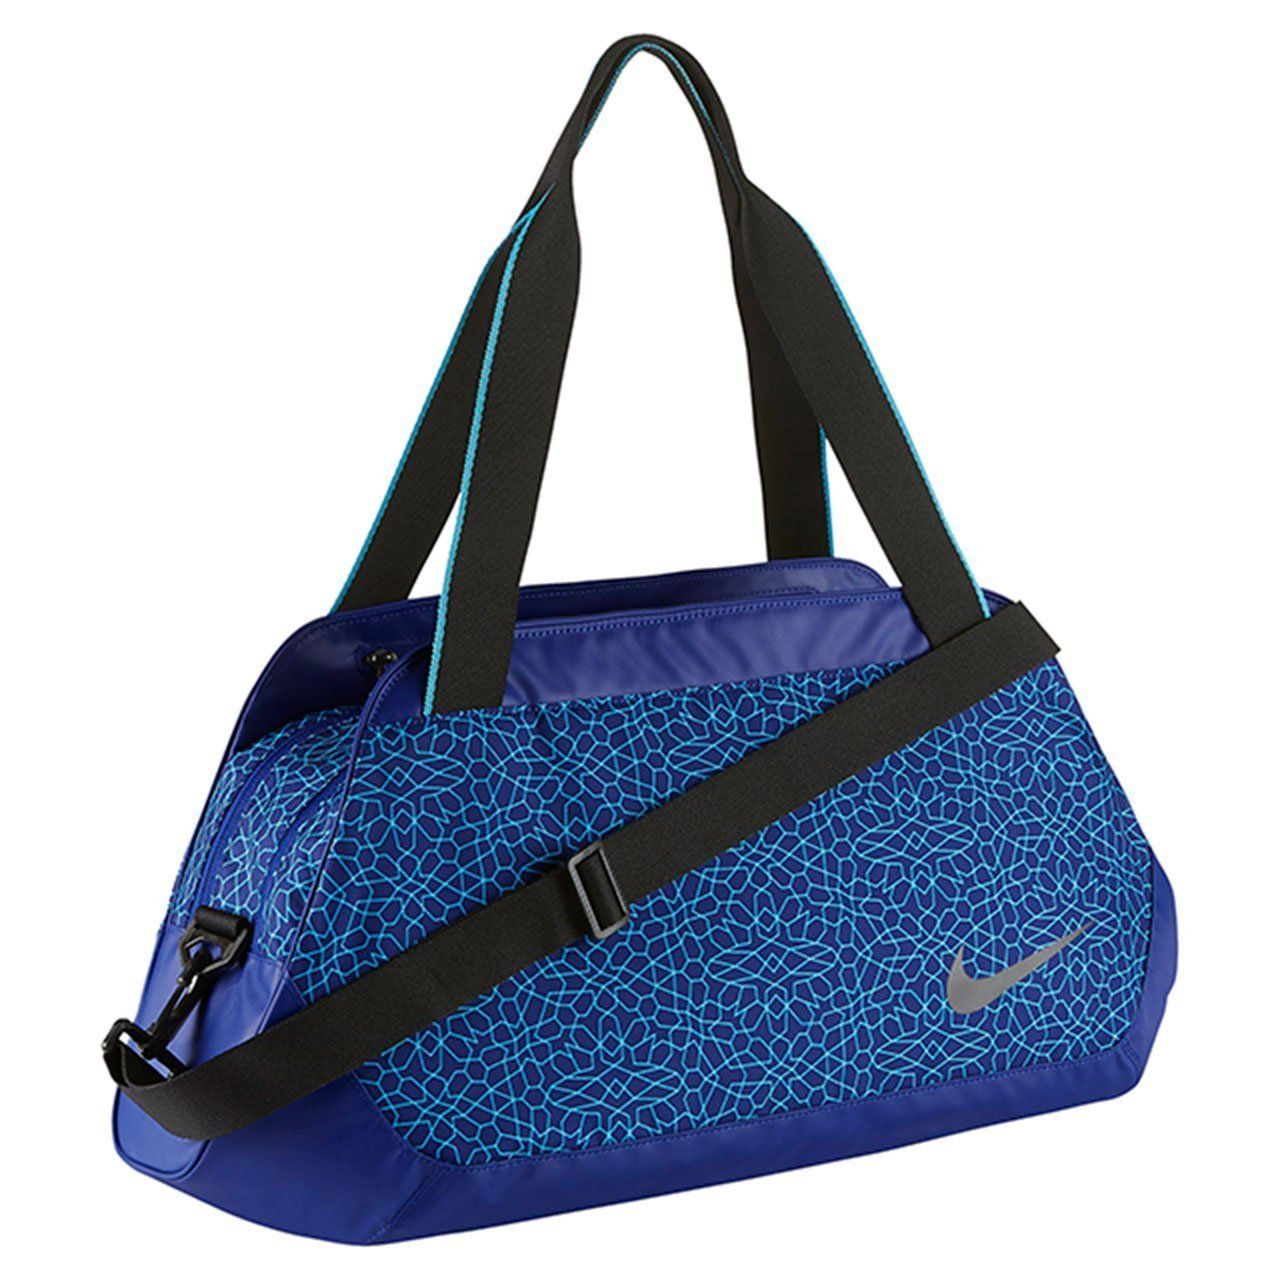 reputable site 8bfb3 f060a Nike Legend Club - Print Sporttasche, 33 Liter, Blau Amazon.de Sport   Freizeit